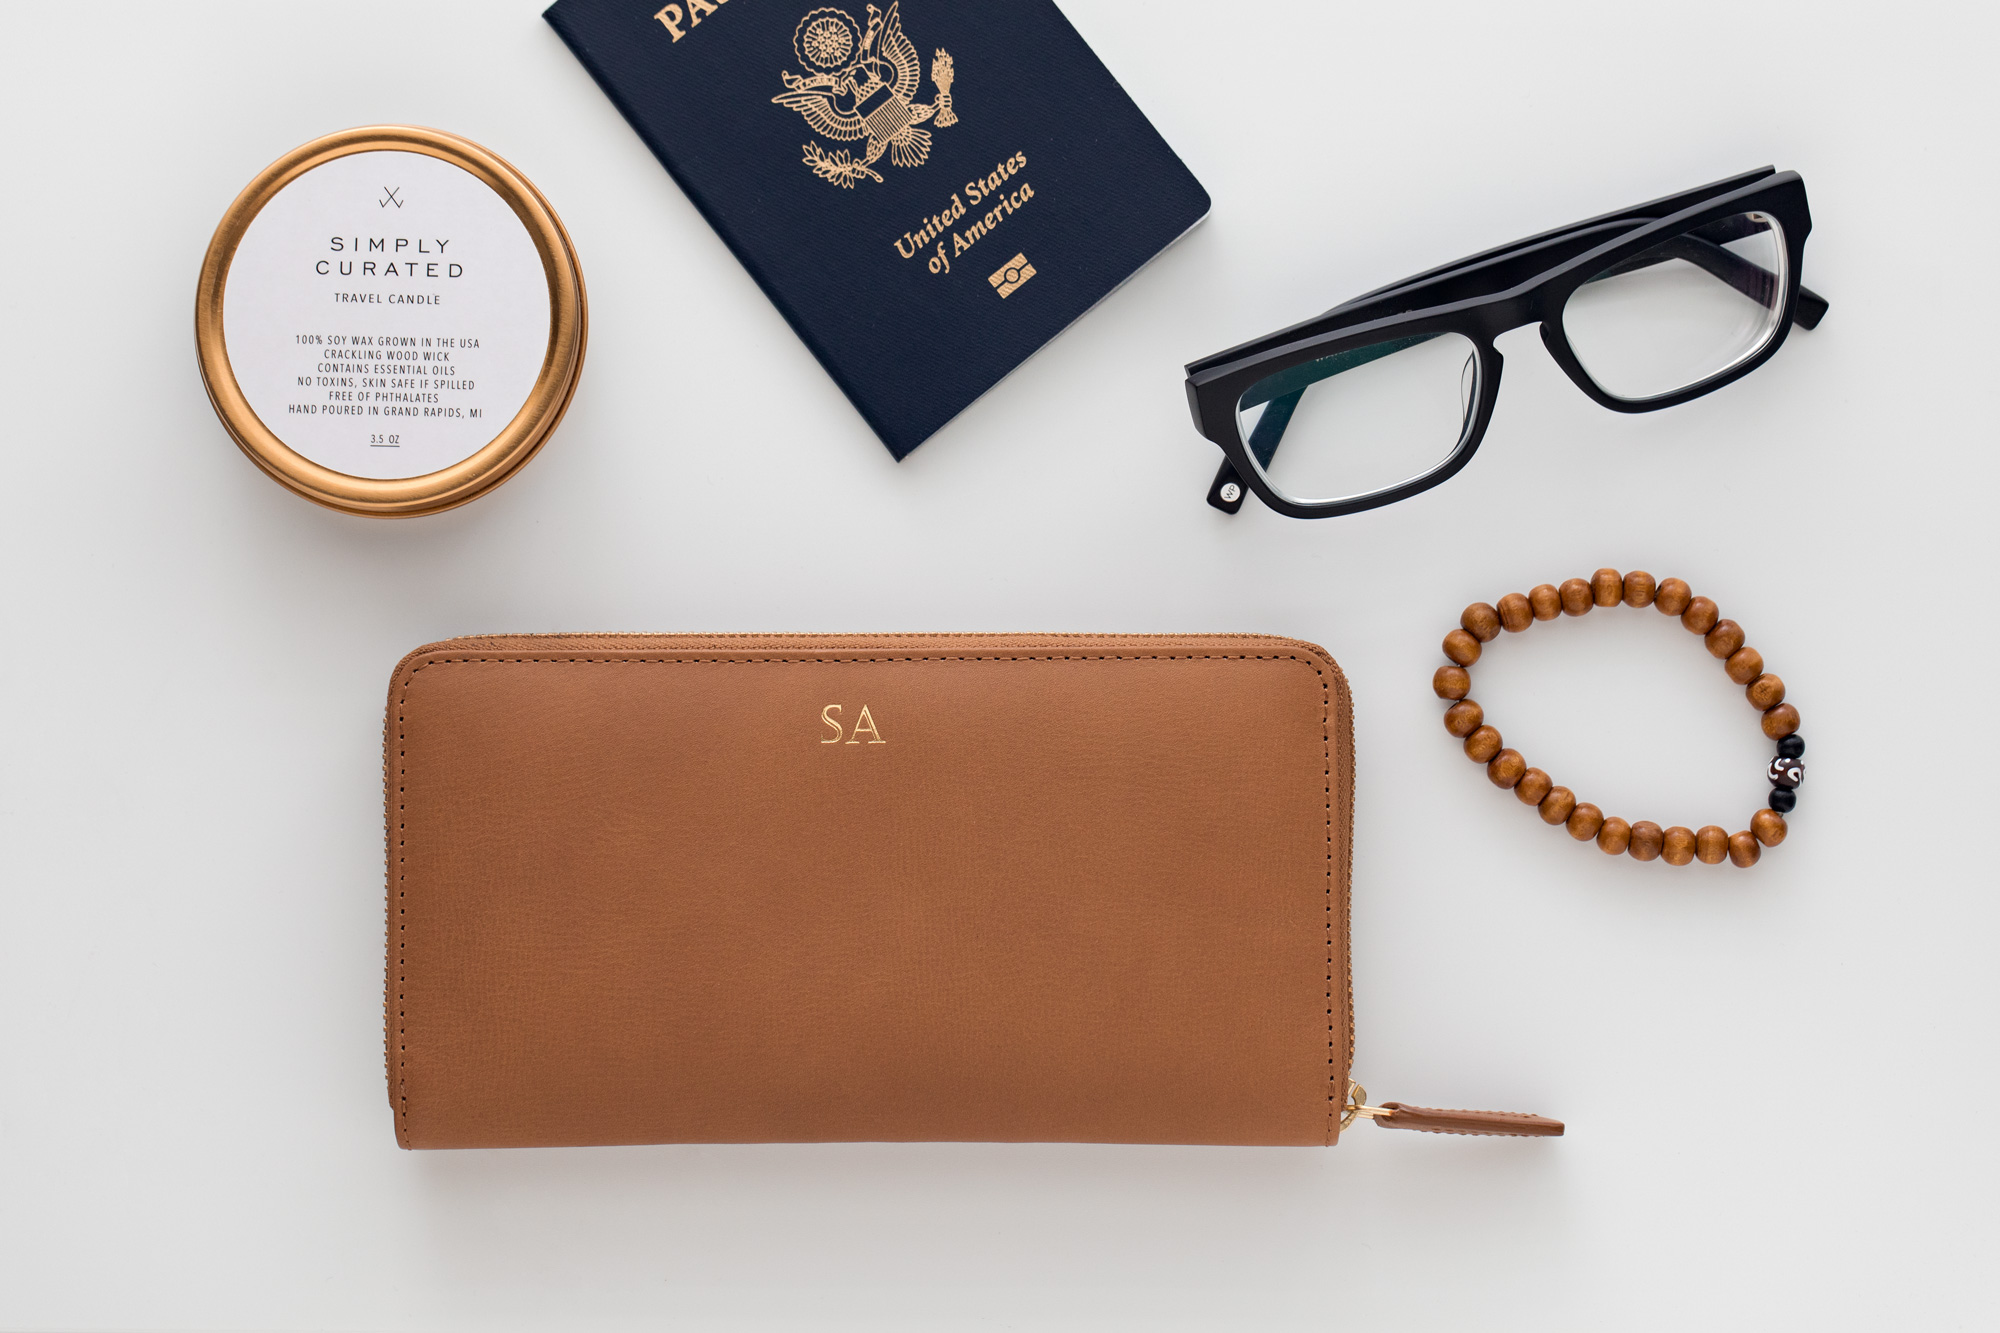 Flat-lay photo of monogramed, leather wallet, simply curated travel candle, warby parker glasses, and beaded bracelet.